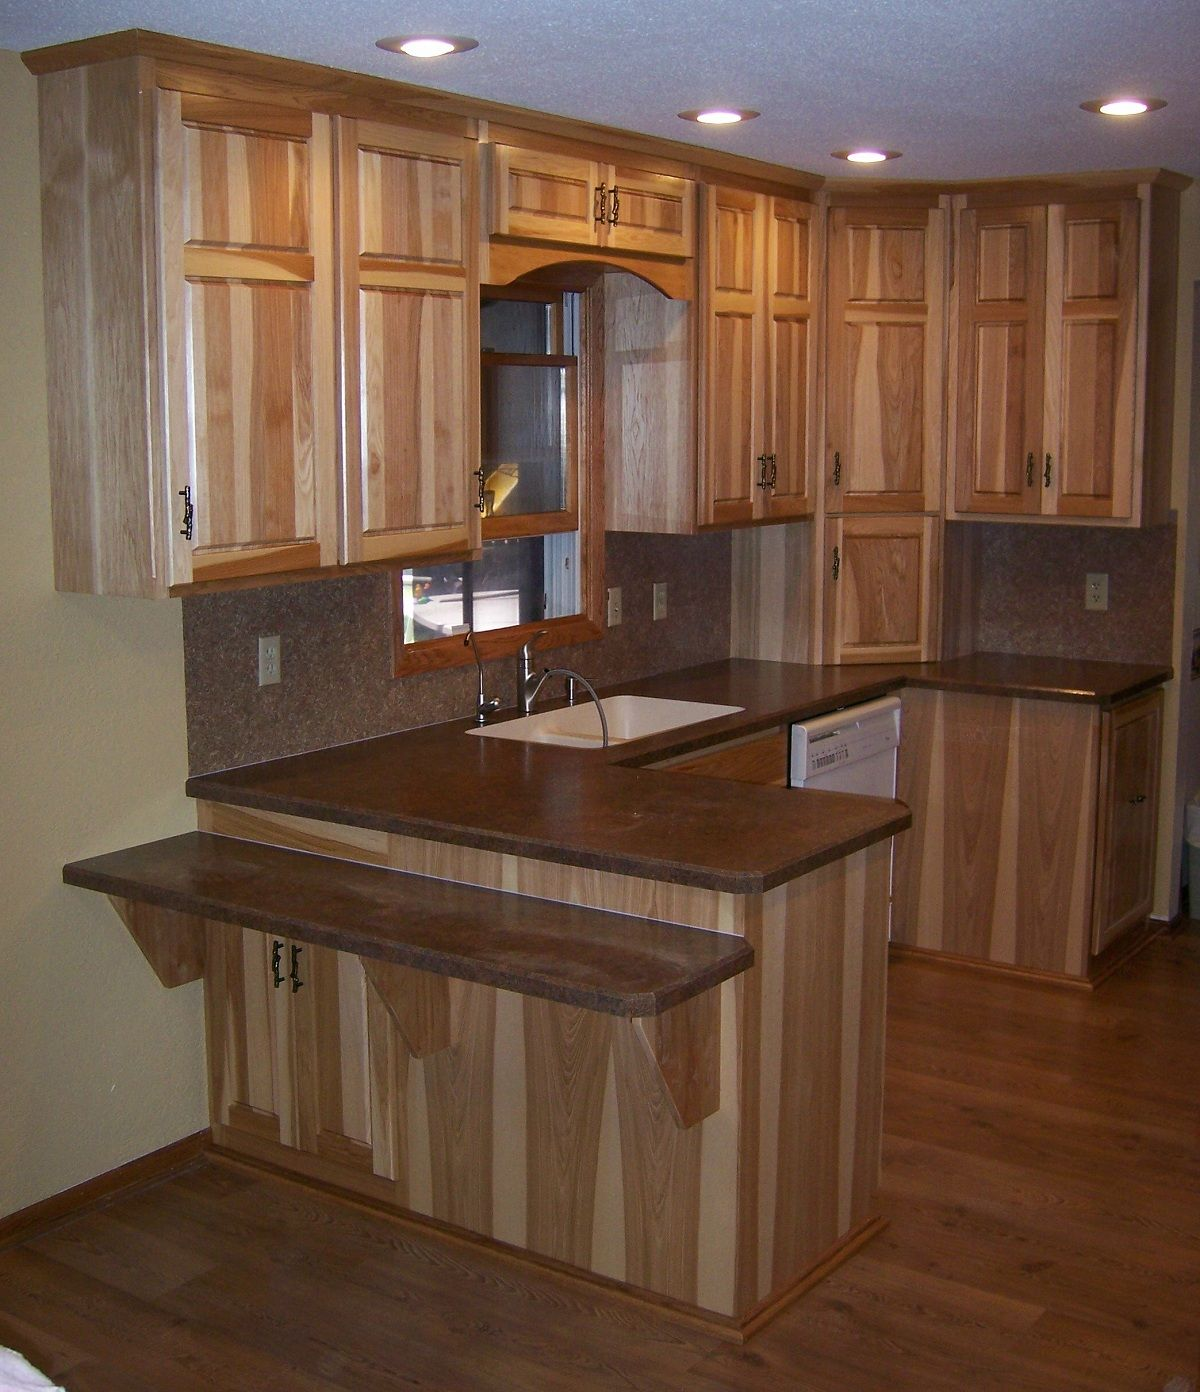 Chickoryfruitwoodsplit2 Jpg 1200 1392 Hickory Kitchen Kitchen Design Hickory Kitchen Cabinets